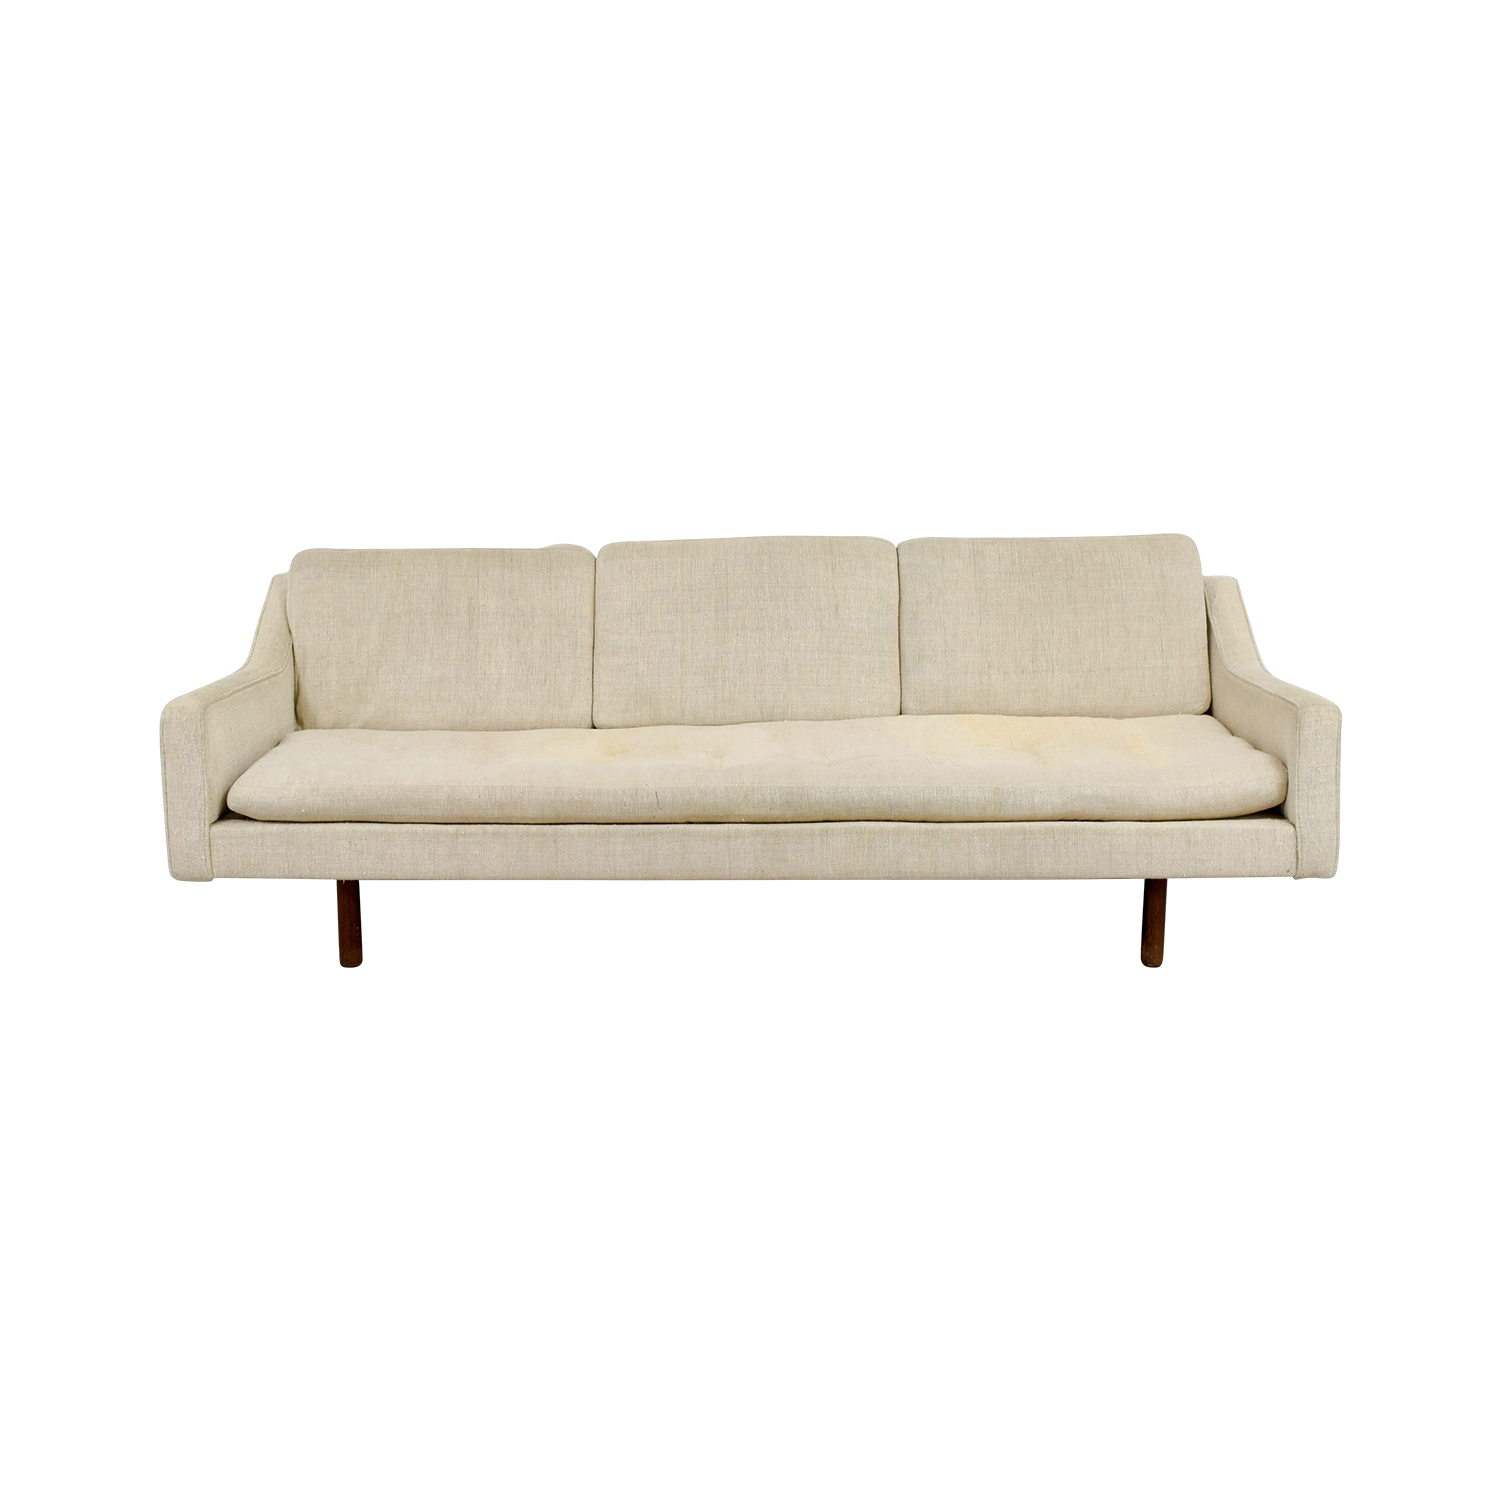 Sensational 90 Off Vintage Mid Century White Single Cushion Sofa Sofas Cjindustries Chair Design For Home Cjindustriesco